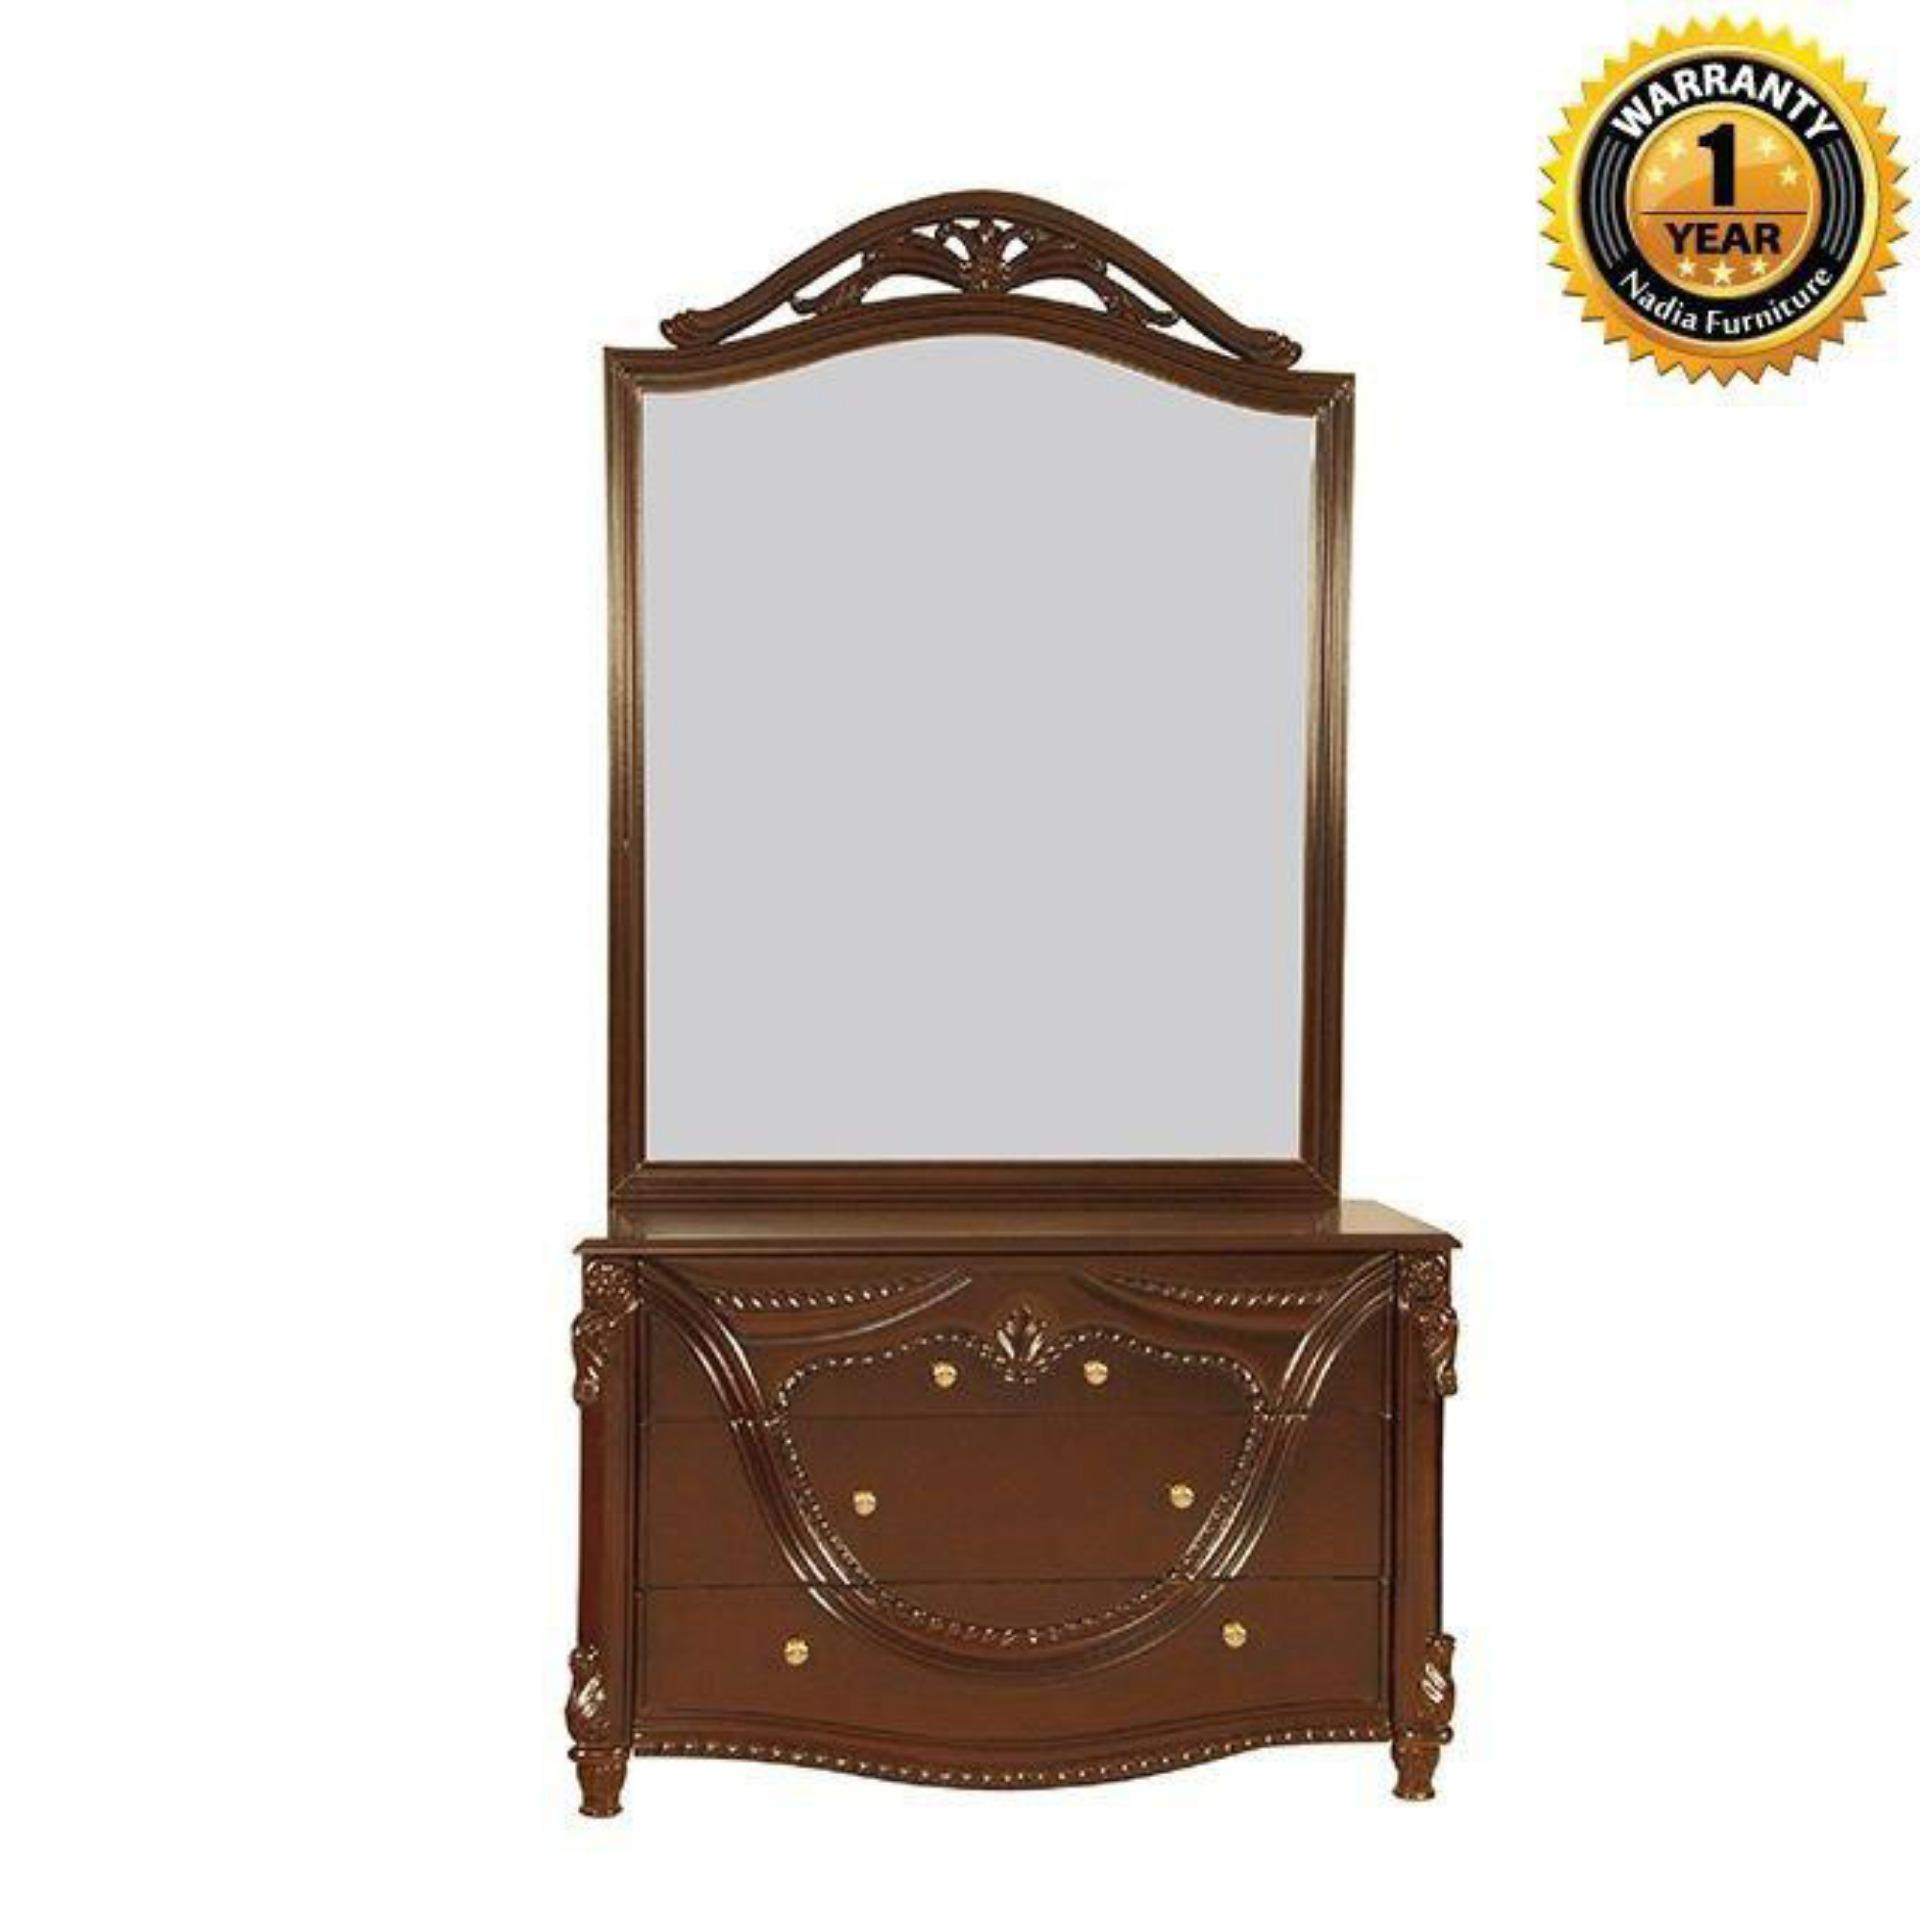 NFL-D-0135 Italy Dressing Table - Glossy R/C Lacquer